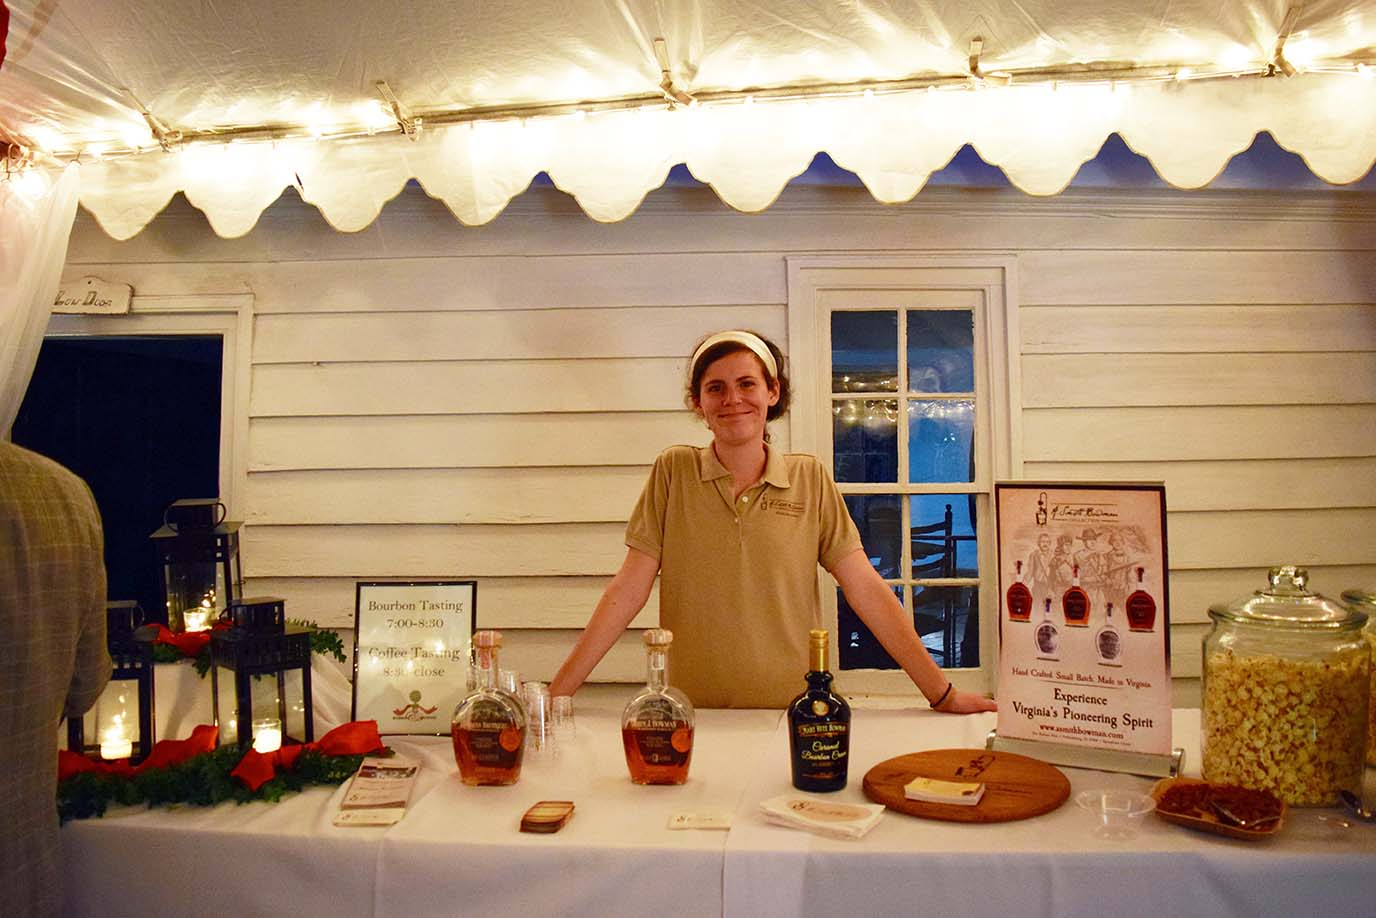 'Bourbon and Boxwood' to raise money for museums